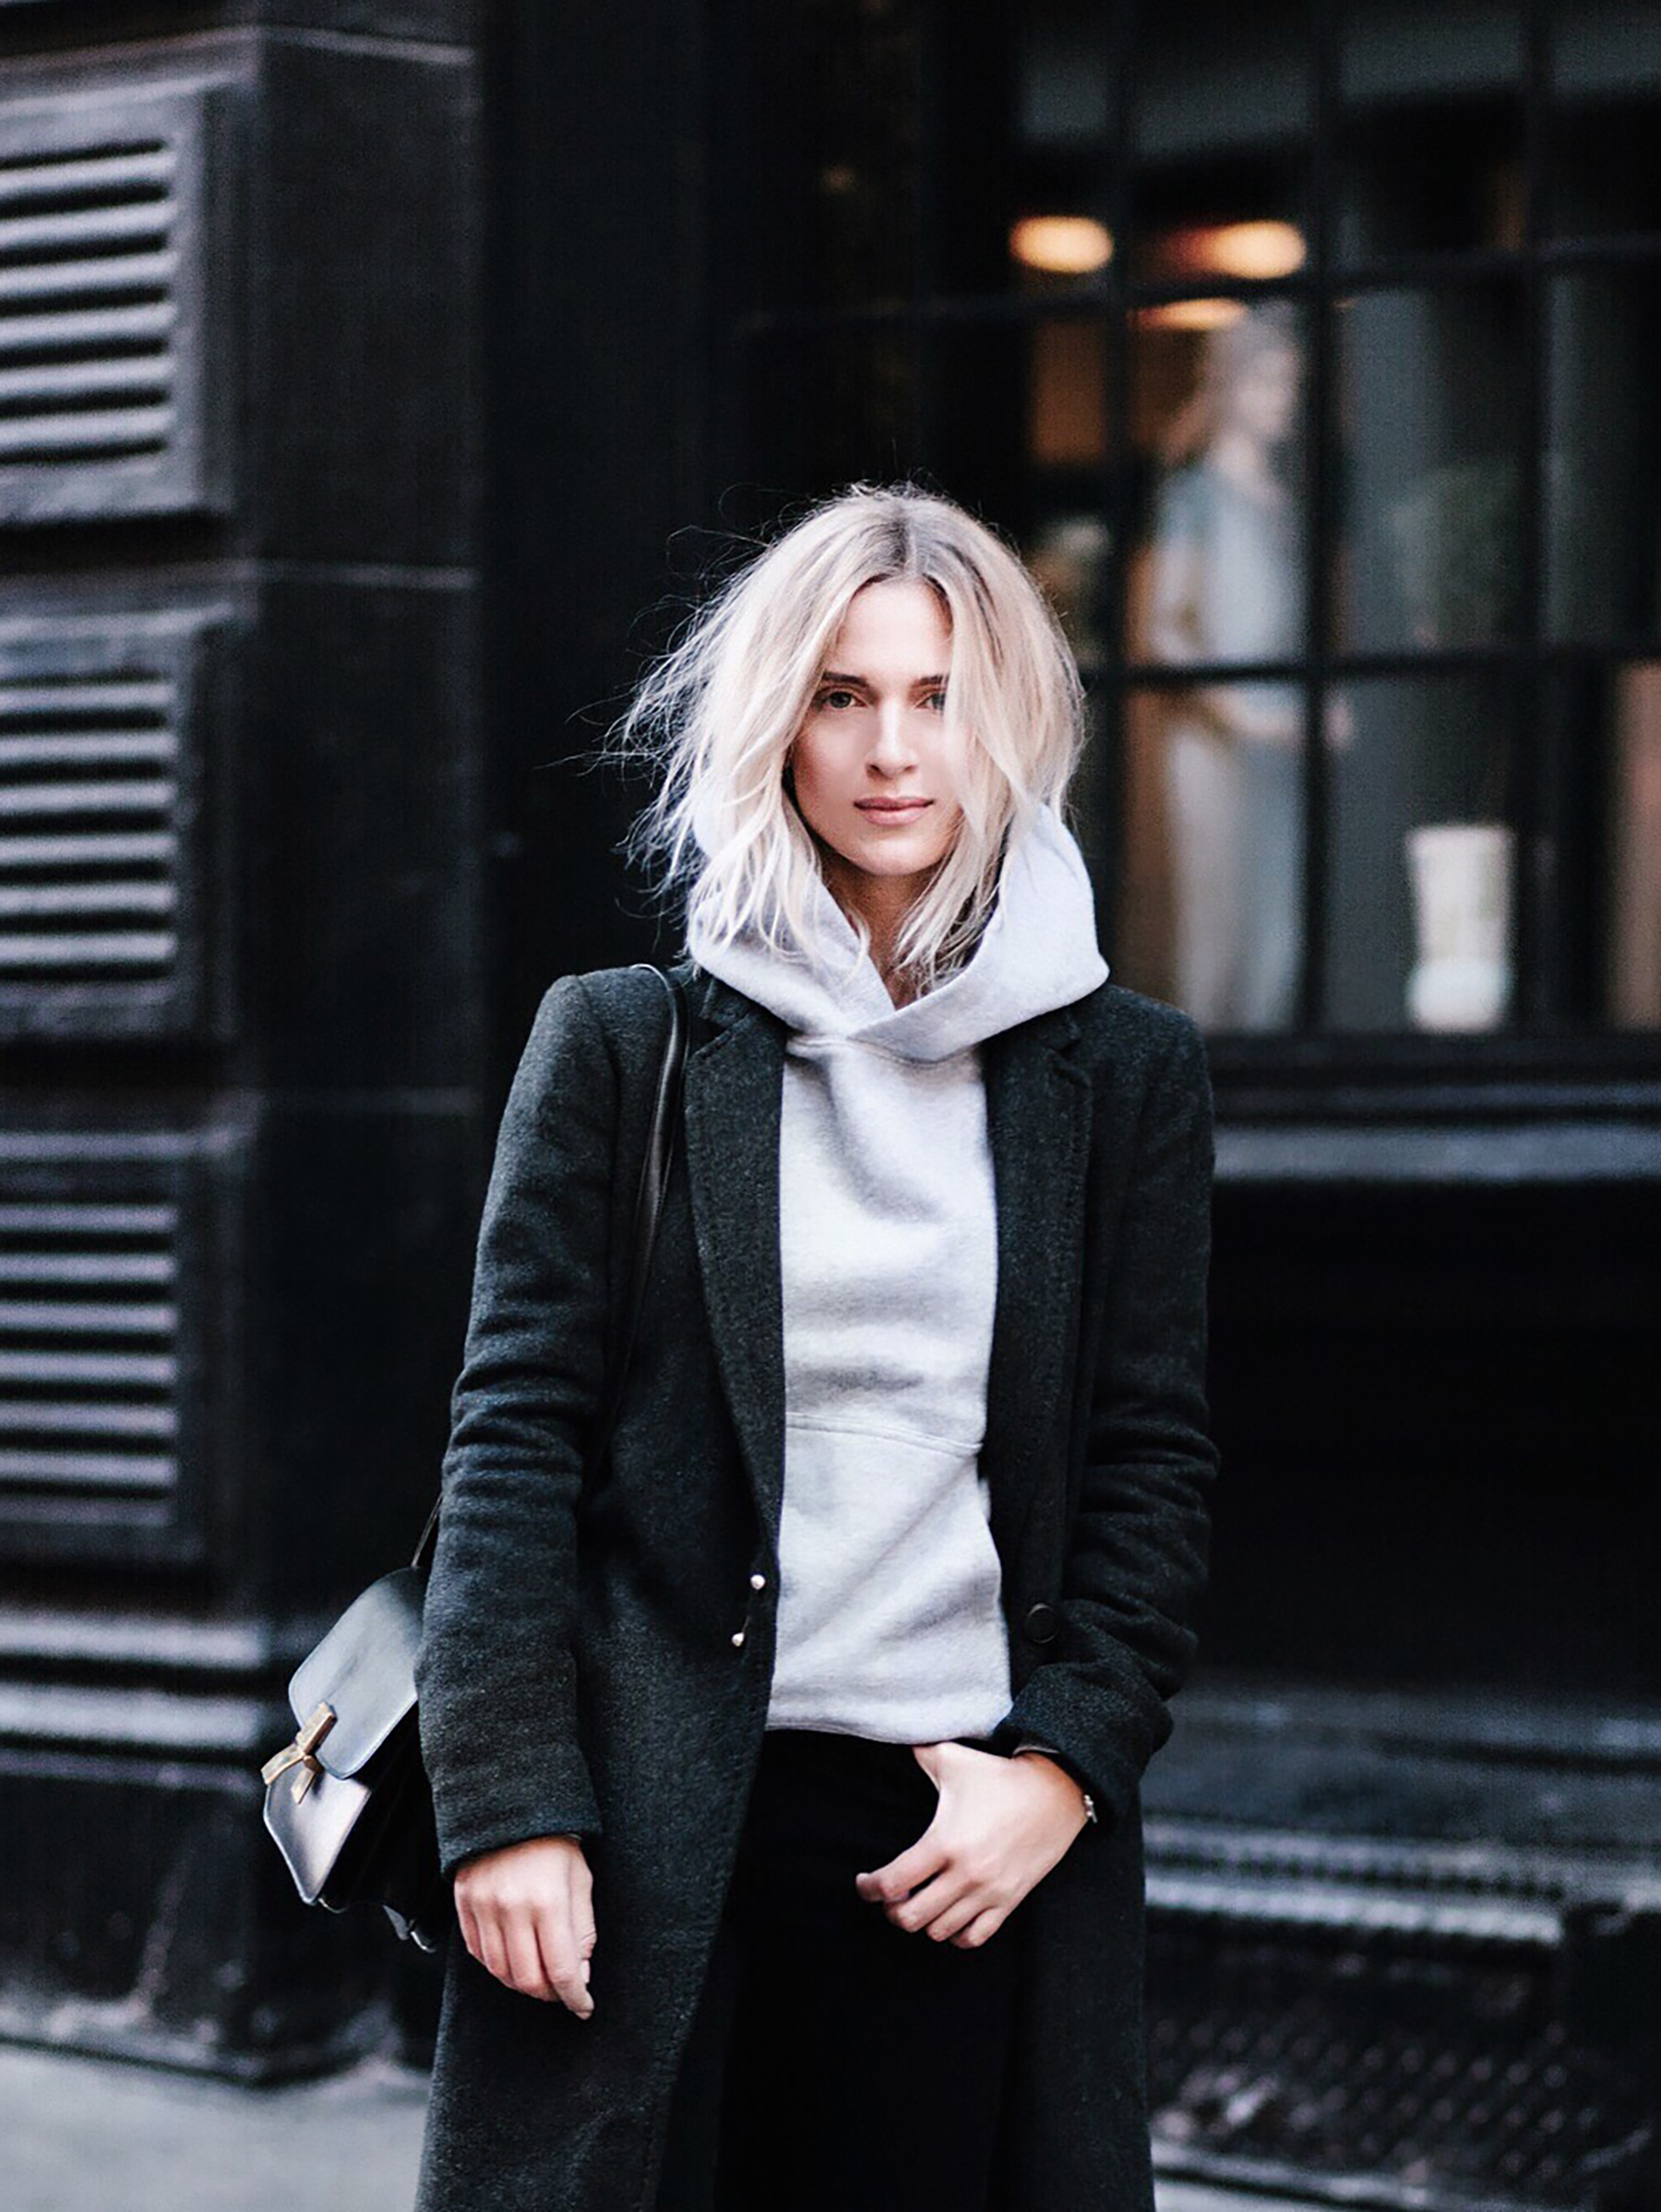 AROUND SOHO | Mija Flatau